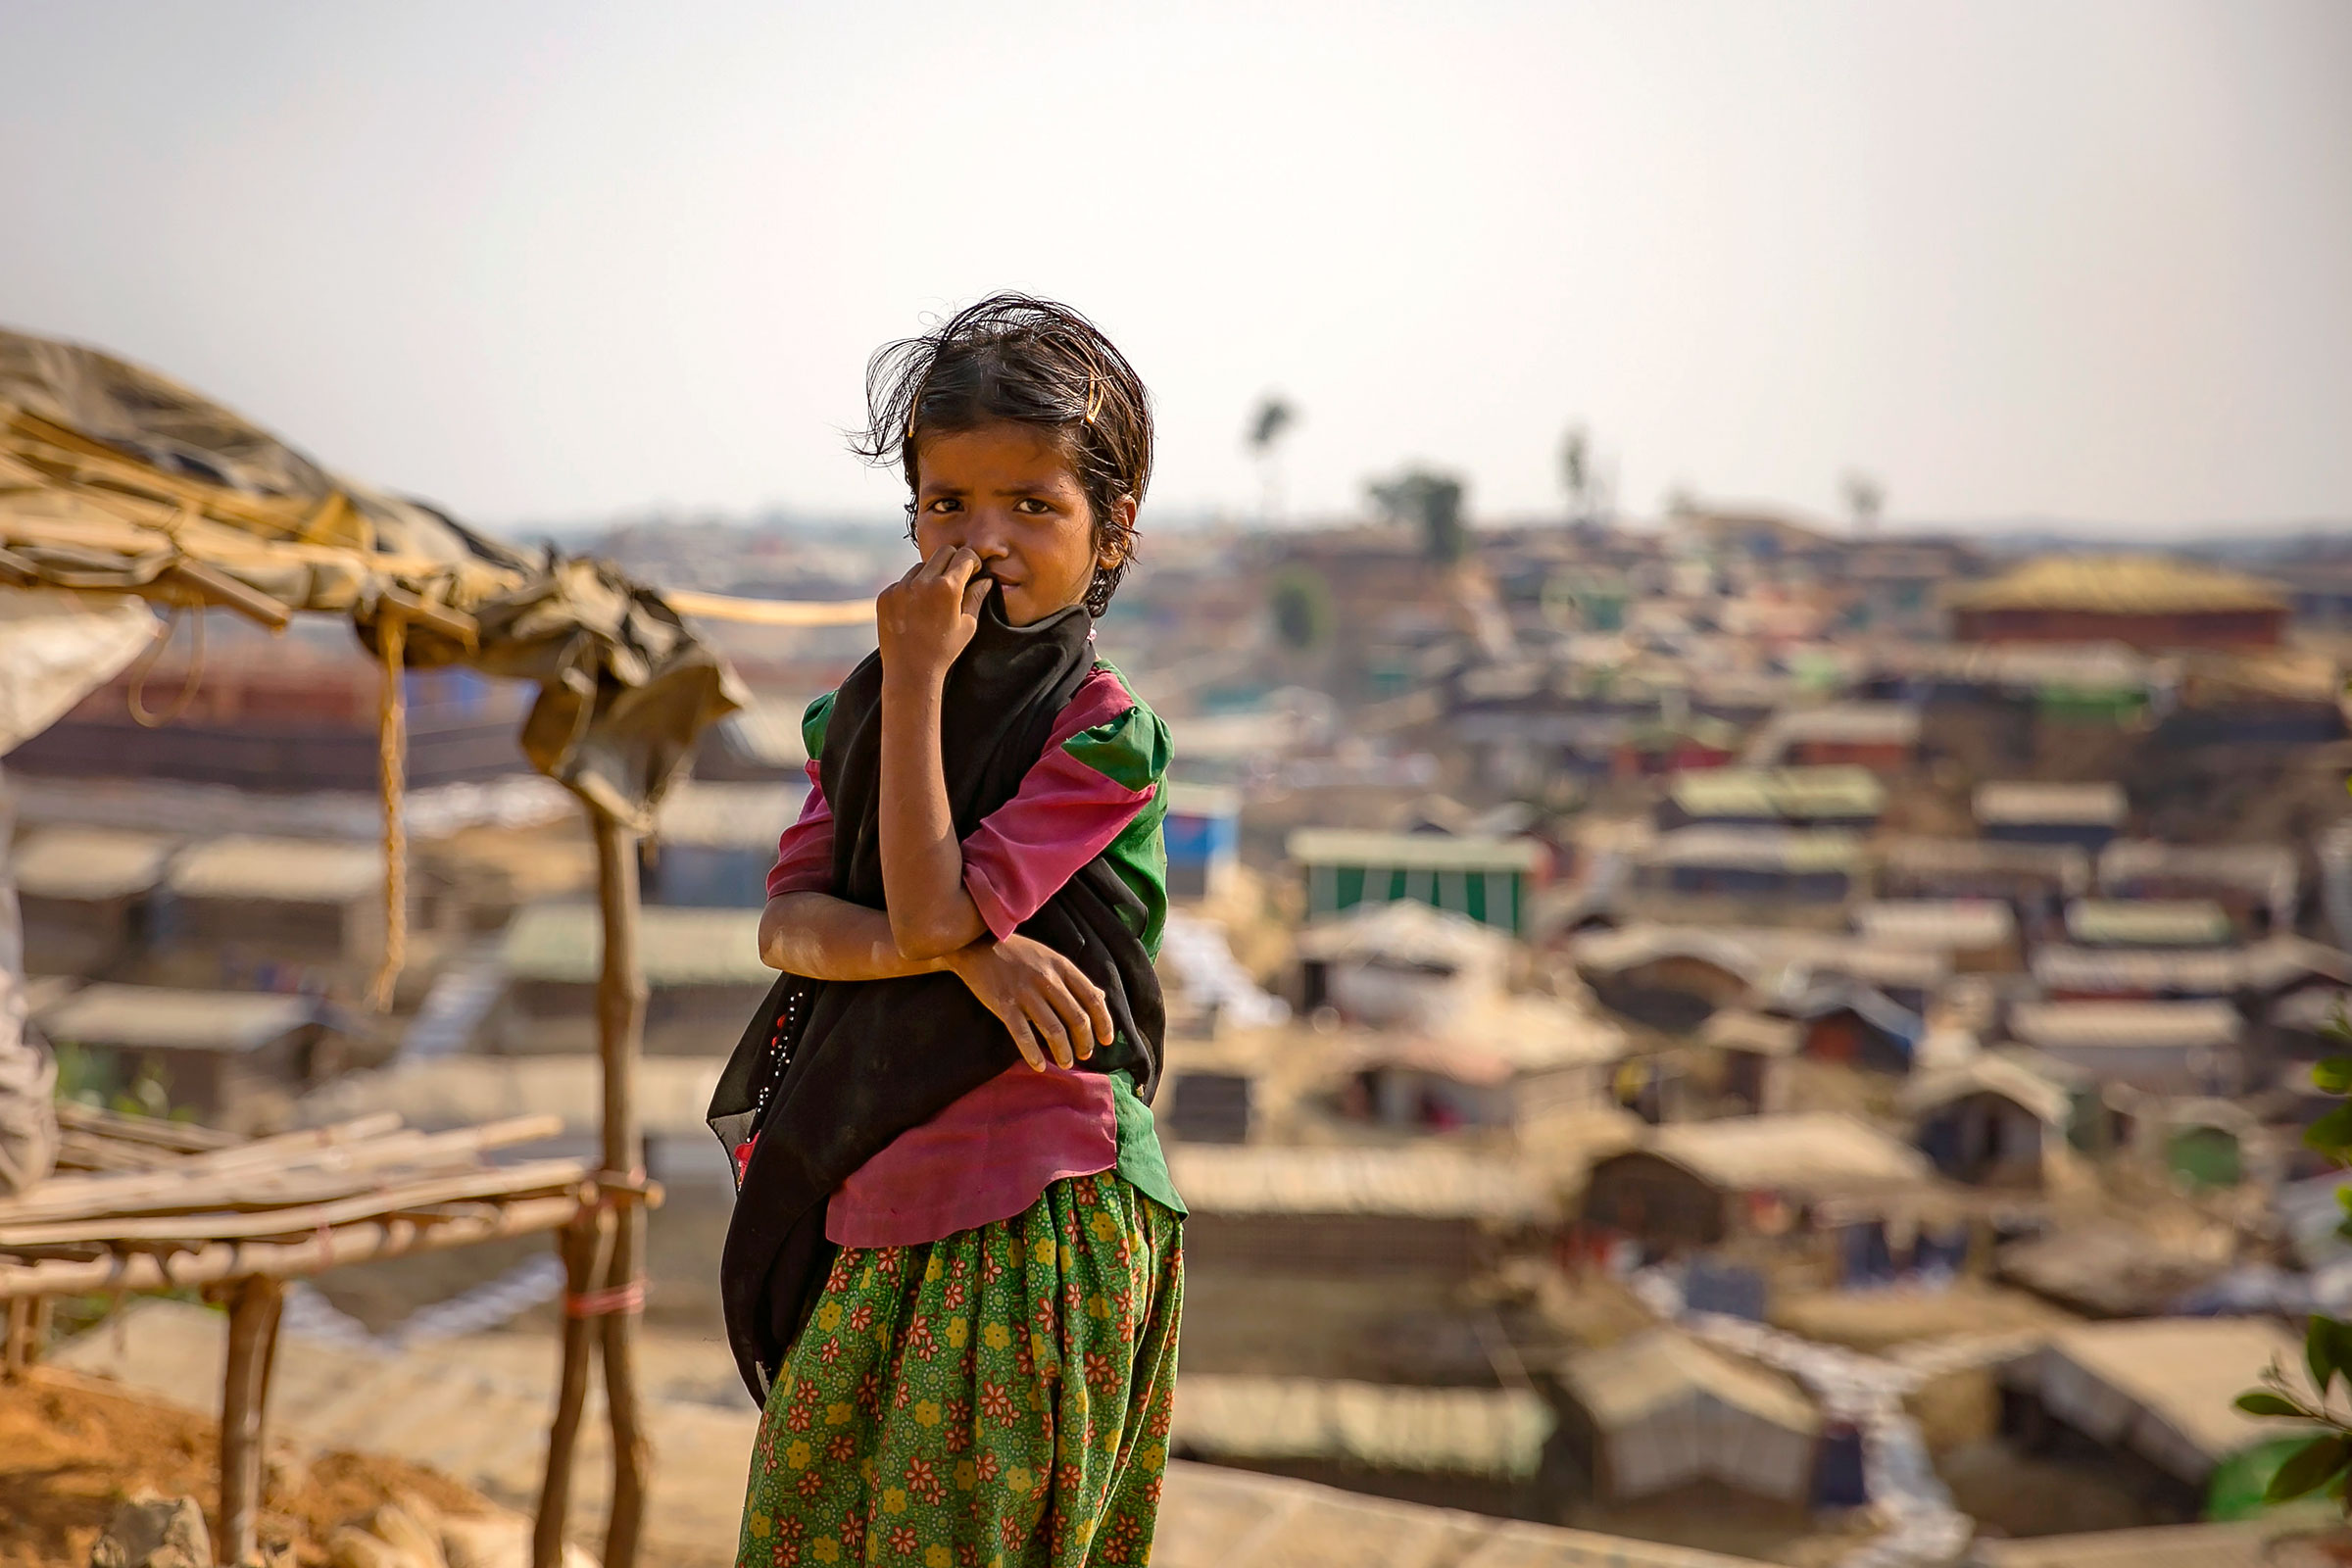 A young Rohingya girl in Cox's Bazar. Photo: U N Women/Allison Joyce